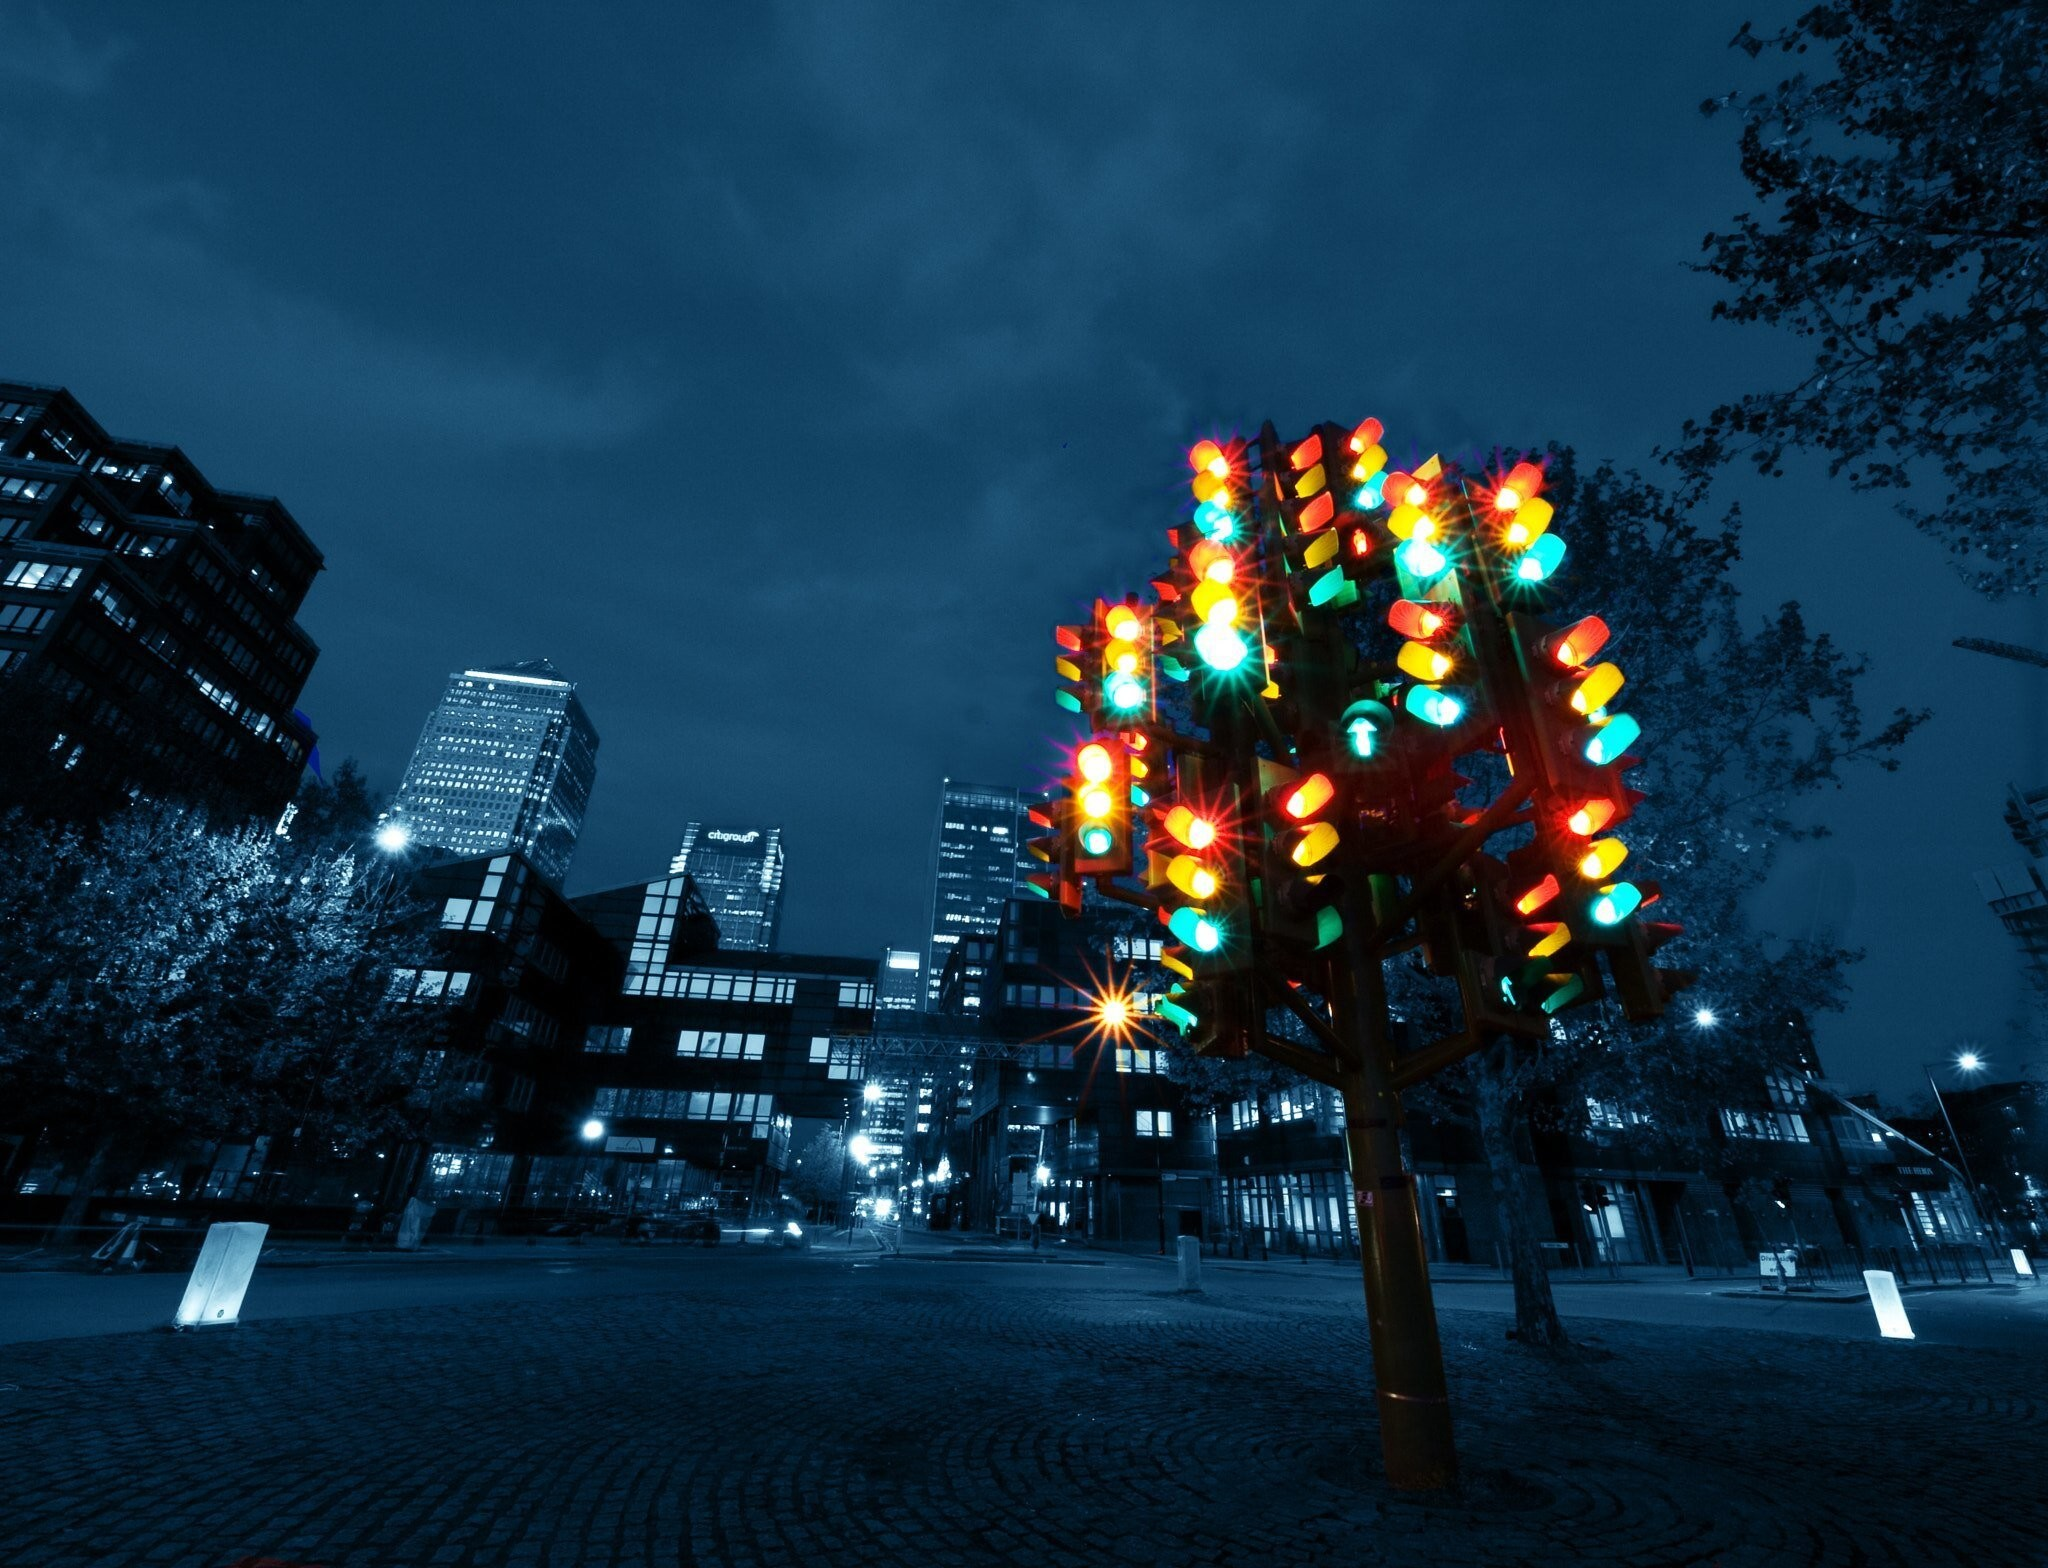 Traffic lights in a tree formation against a city skyline